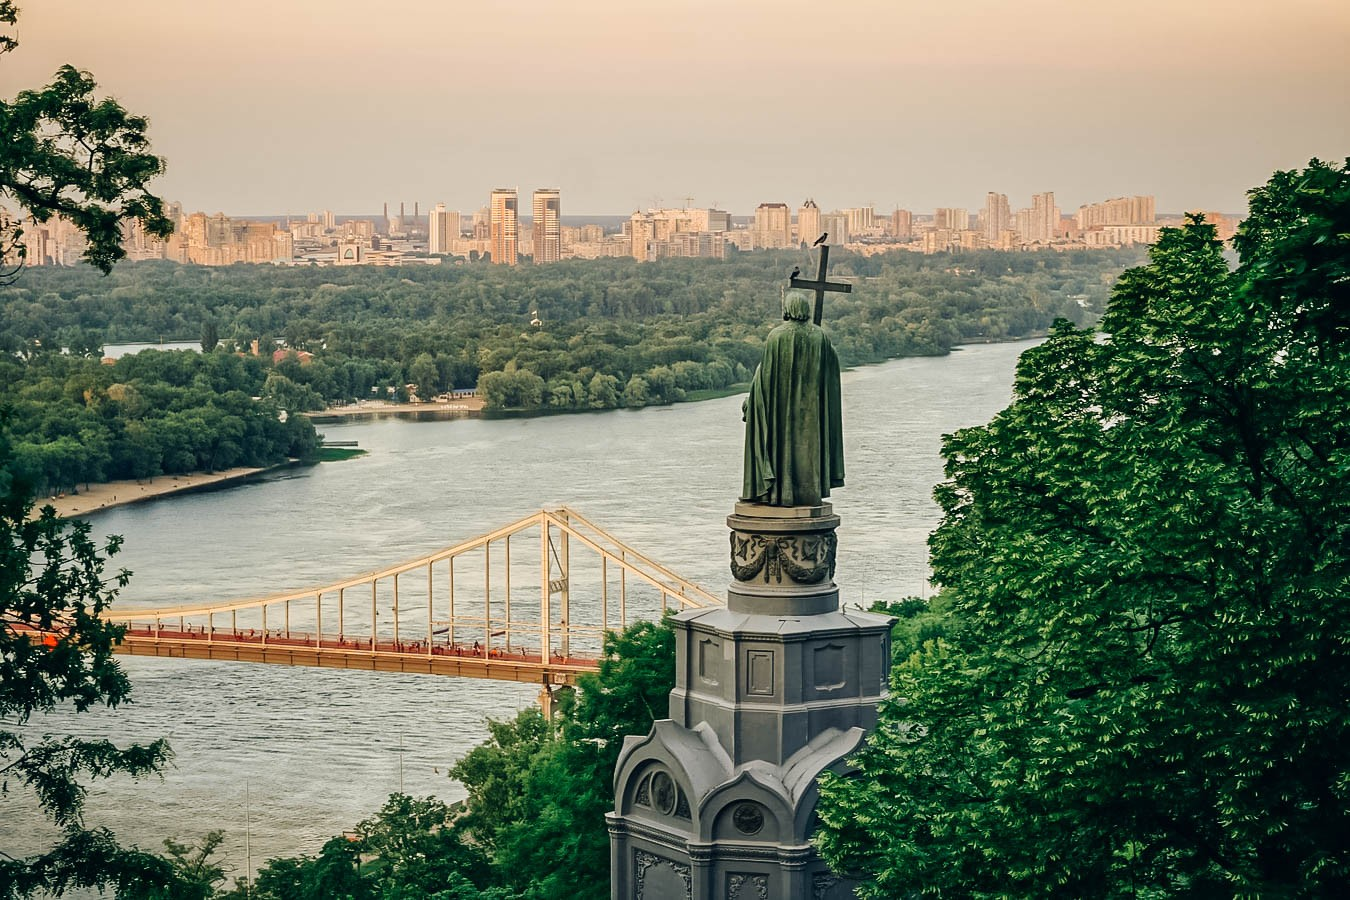 More on the Ukrainian tech ecosystem